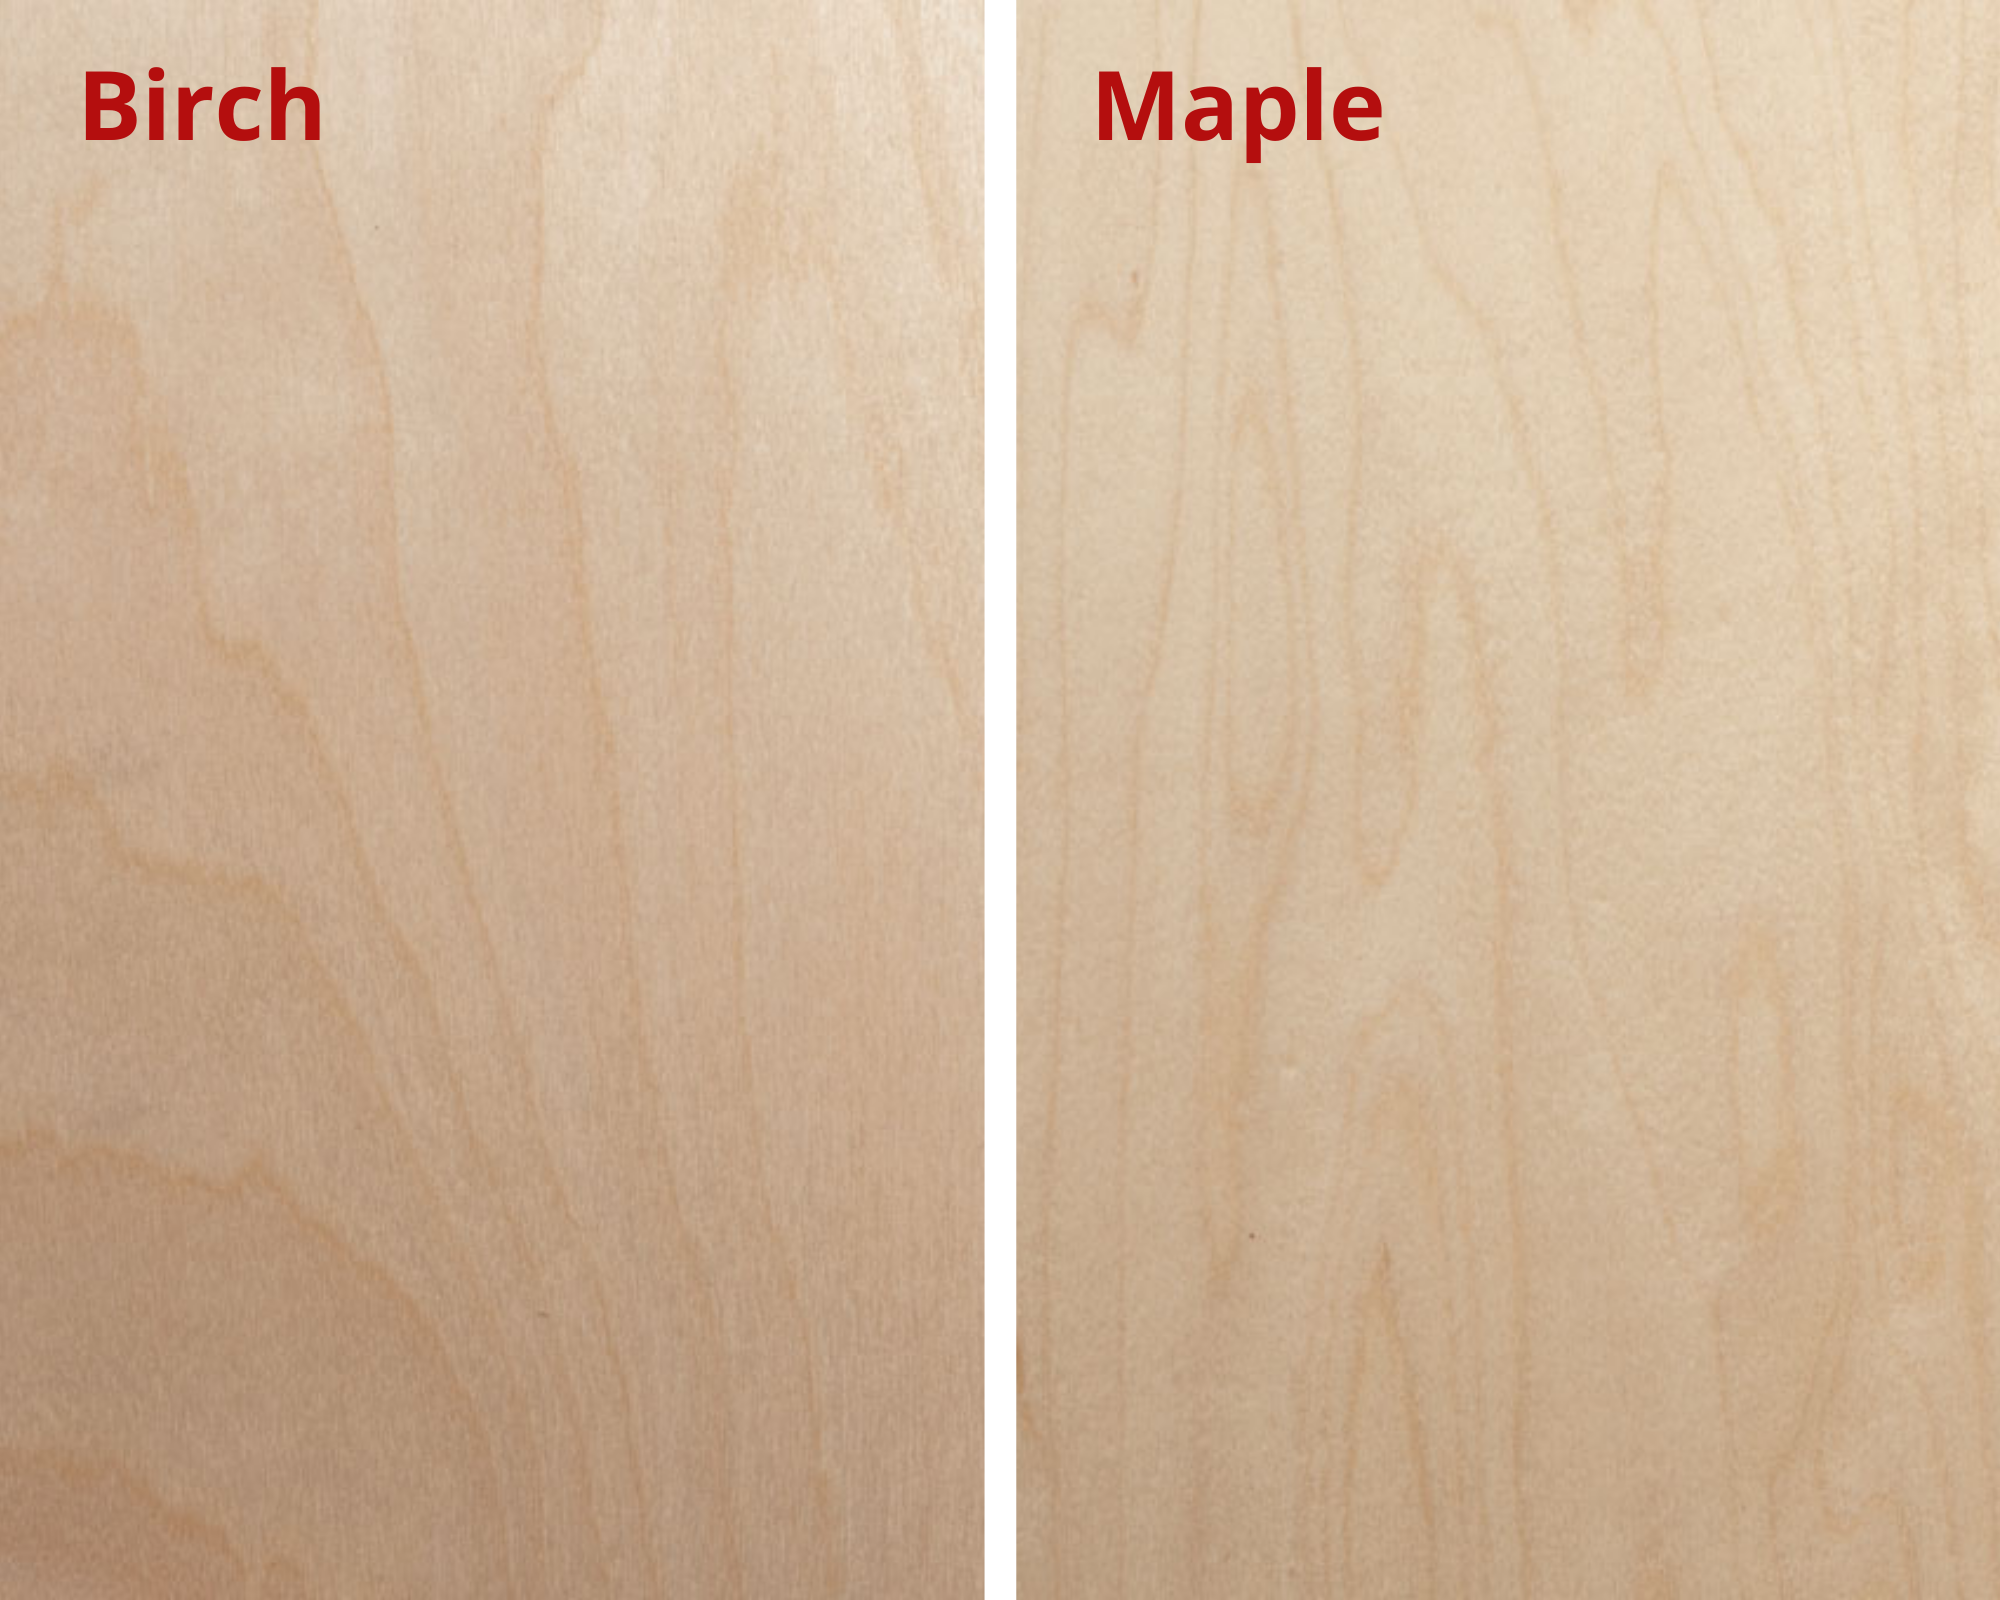 birch and maple